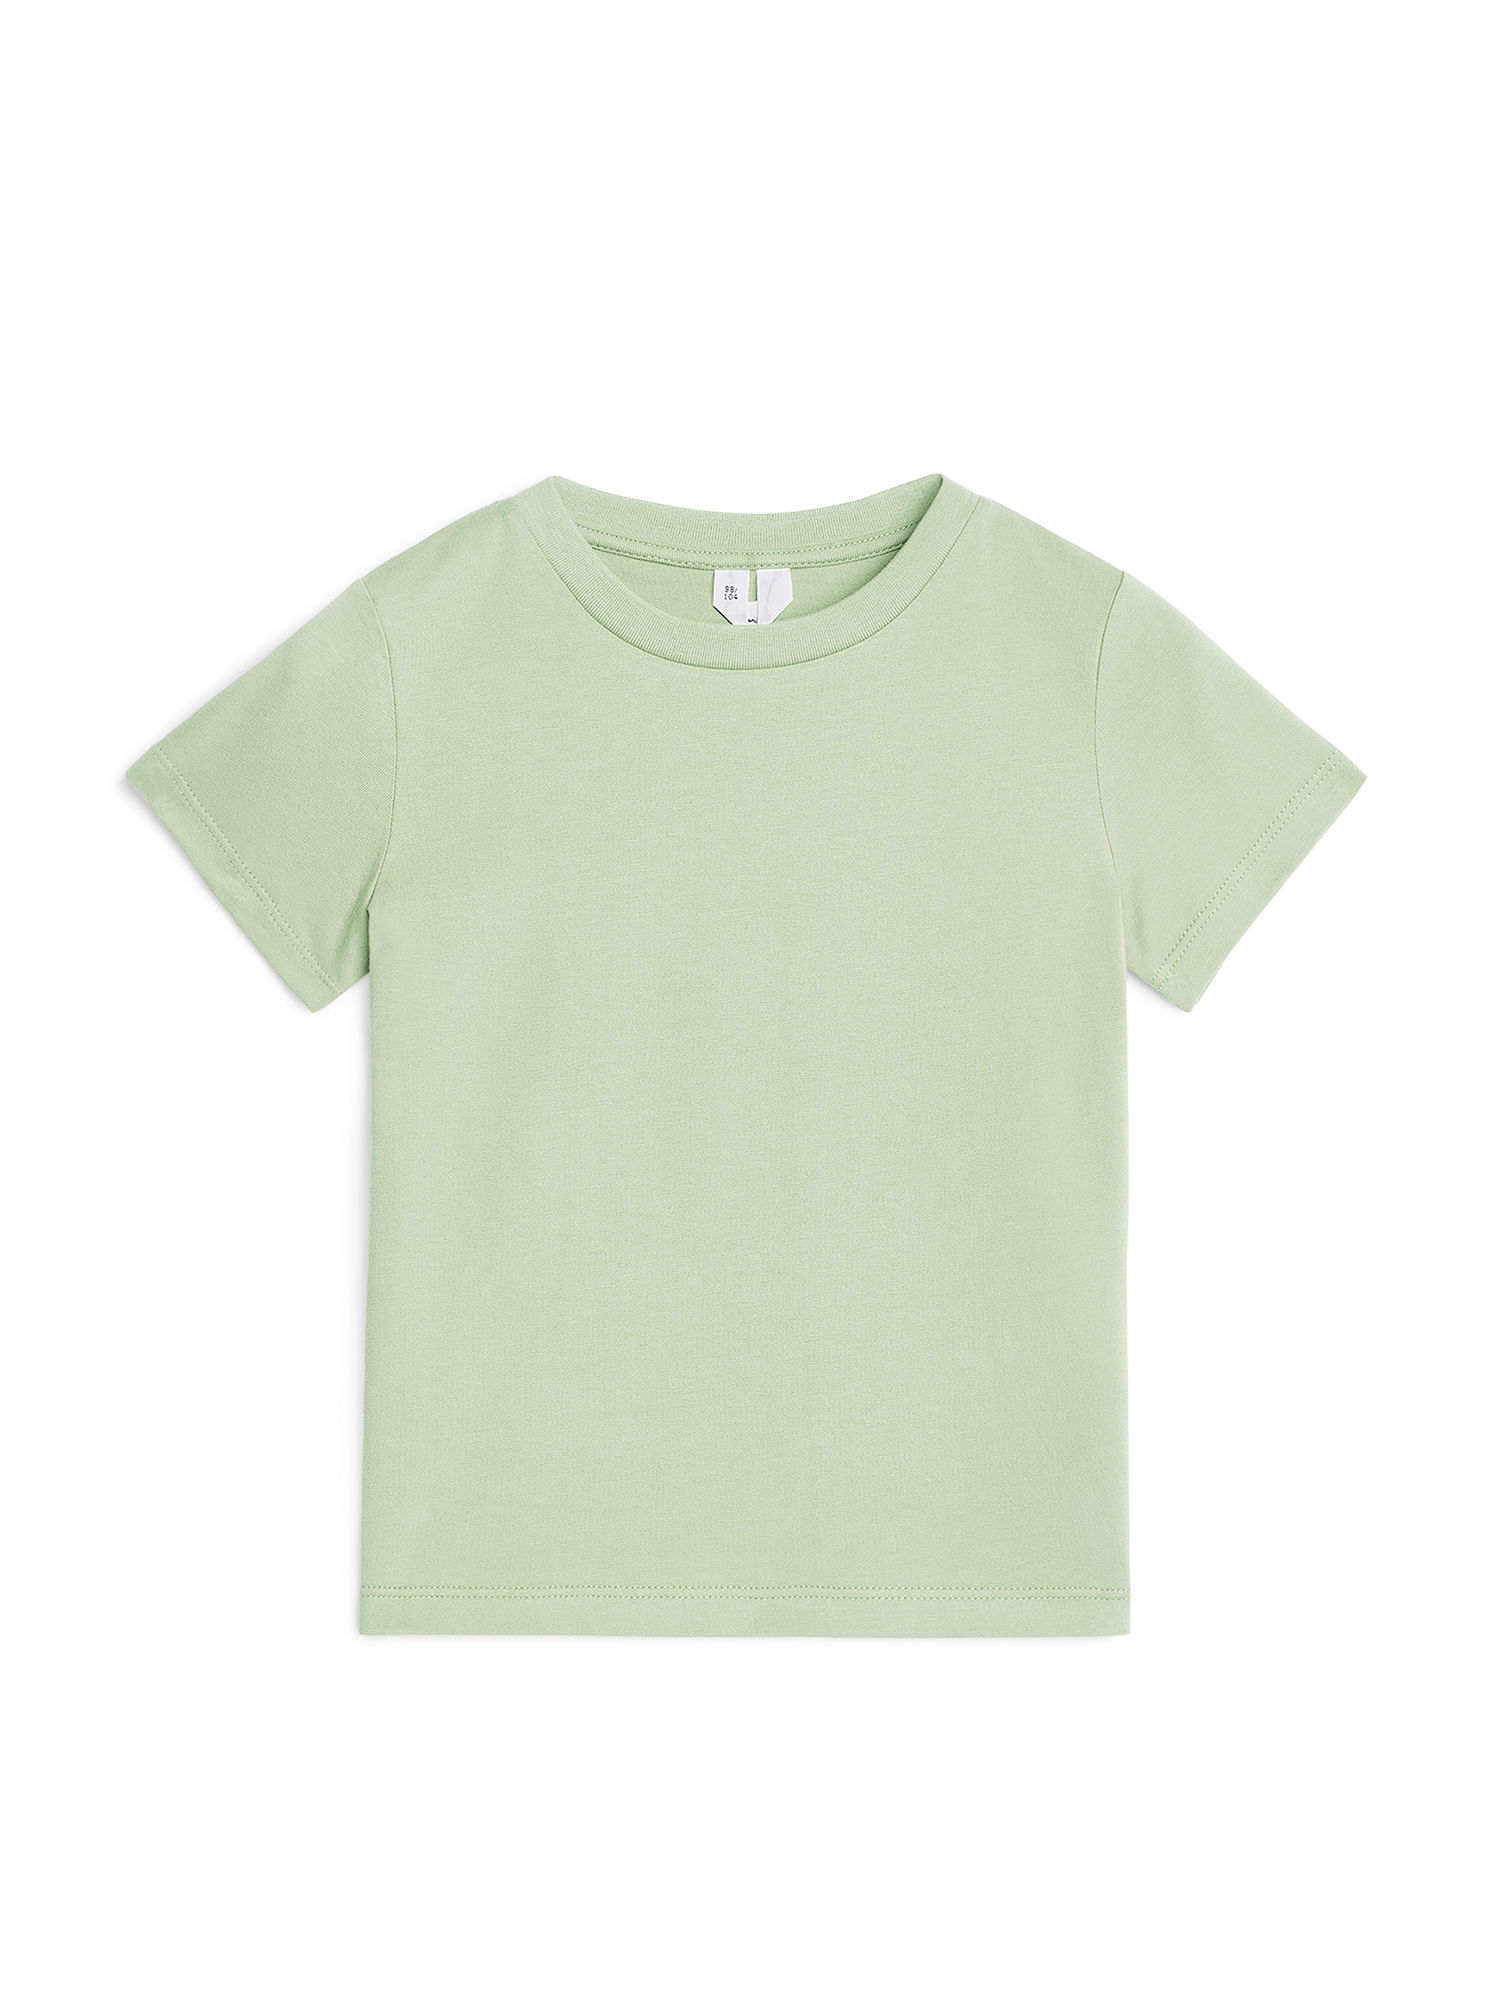 Fabric Swatch image of Arket organic cotton crew-neck t-shirt in green